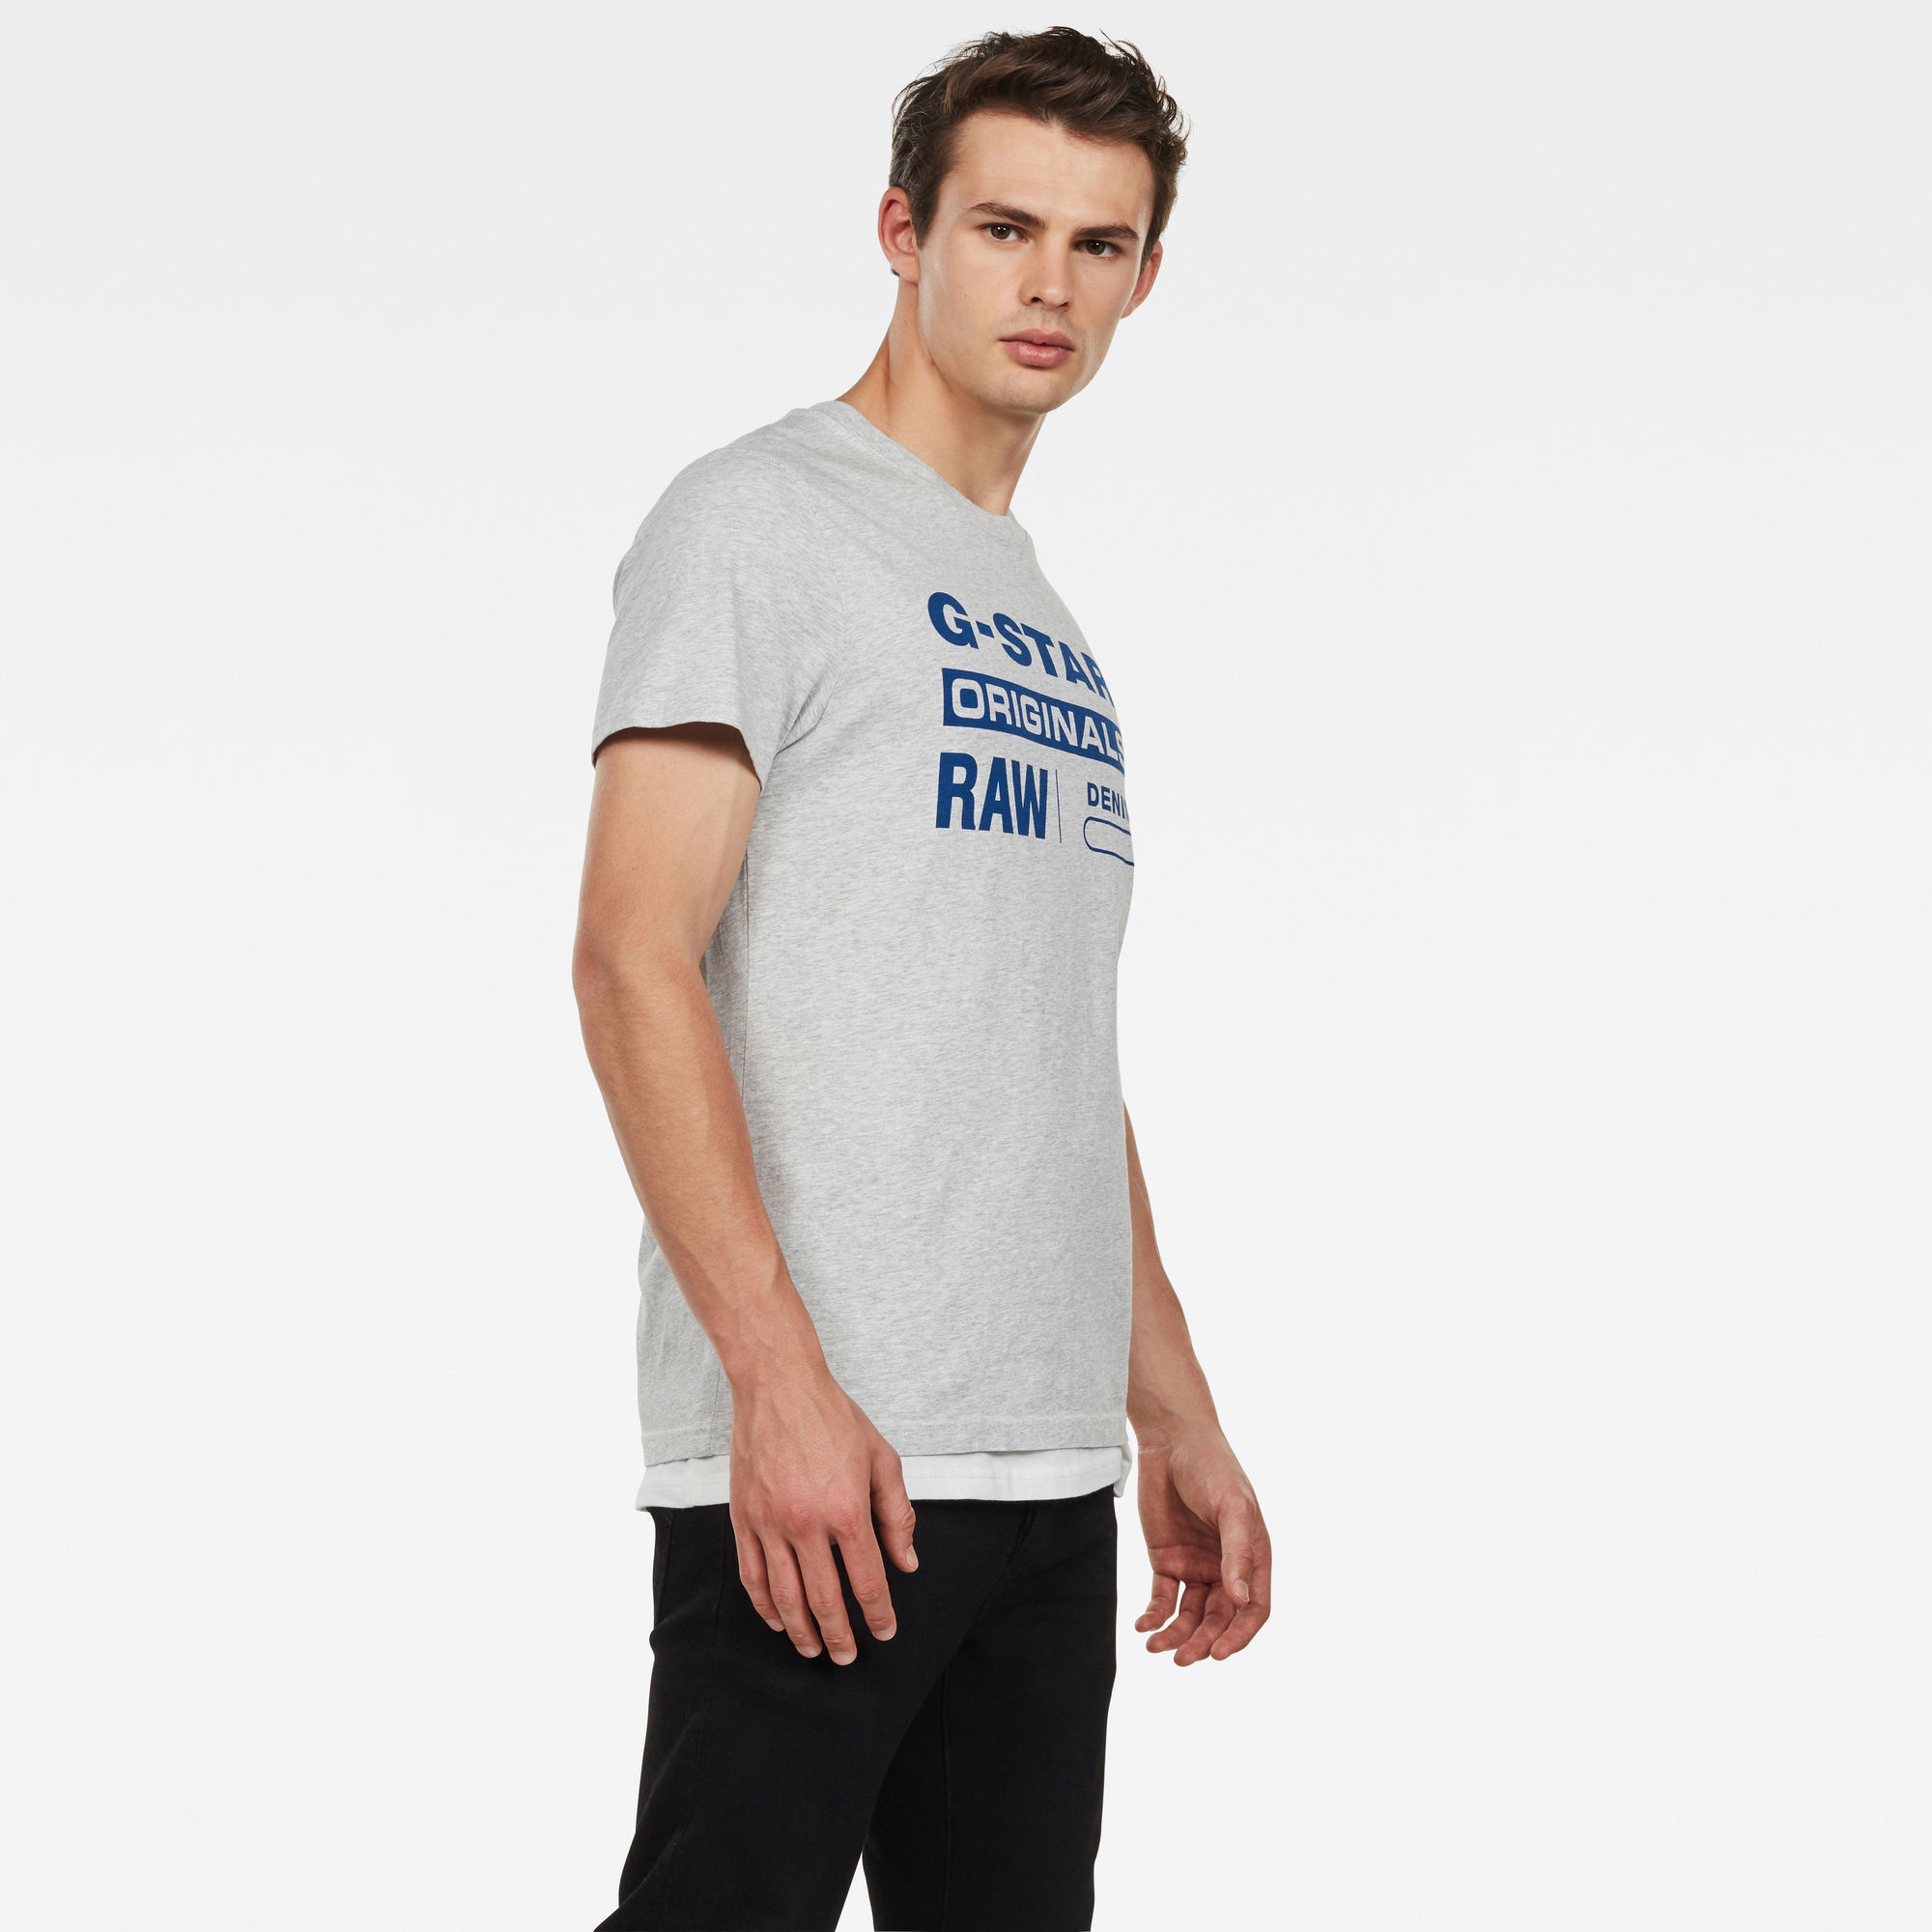 G-Star RAW Graphic Logo 8 T-Shirt